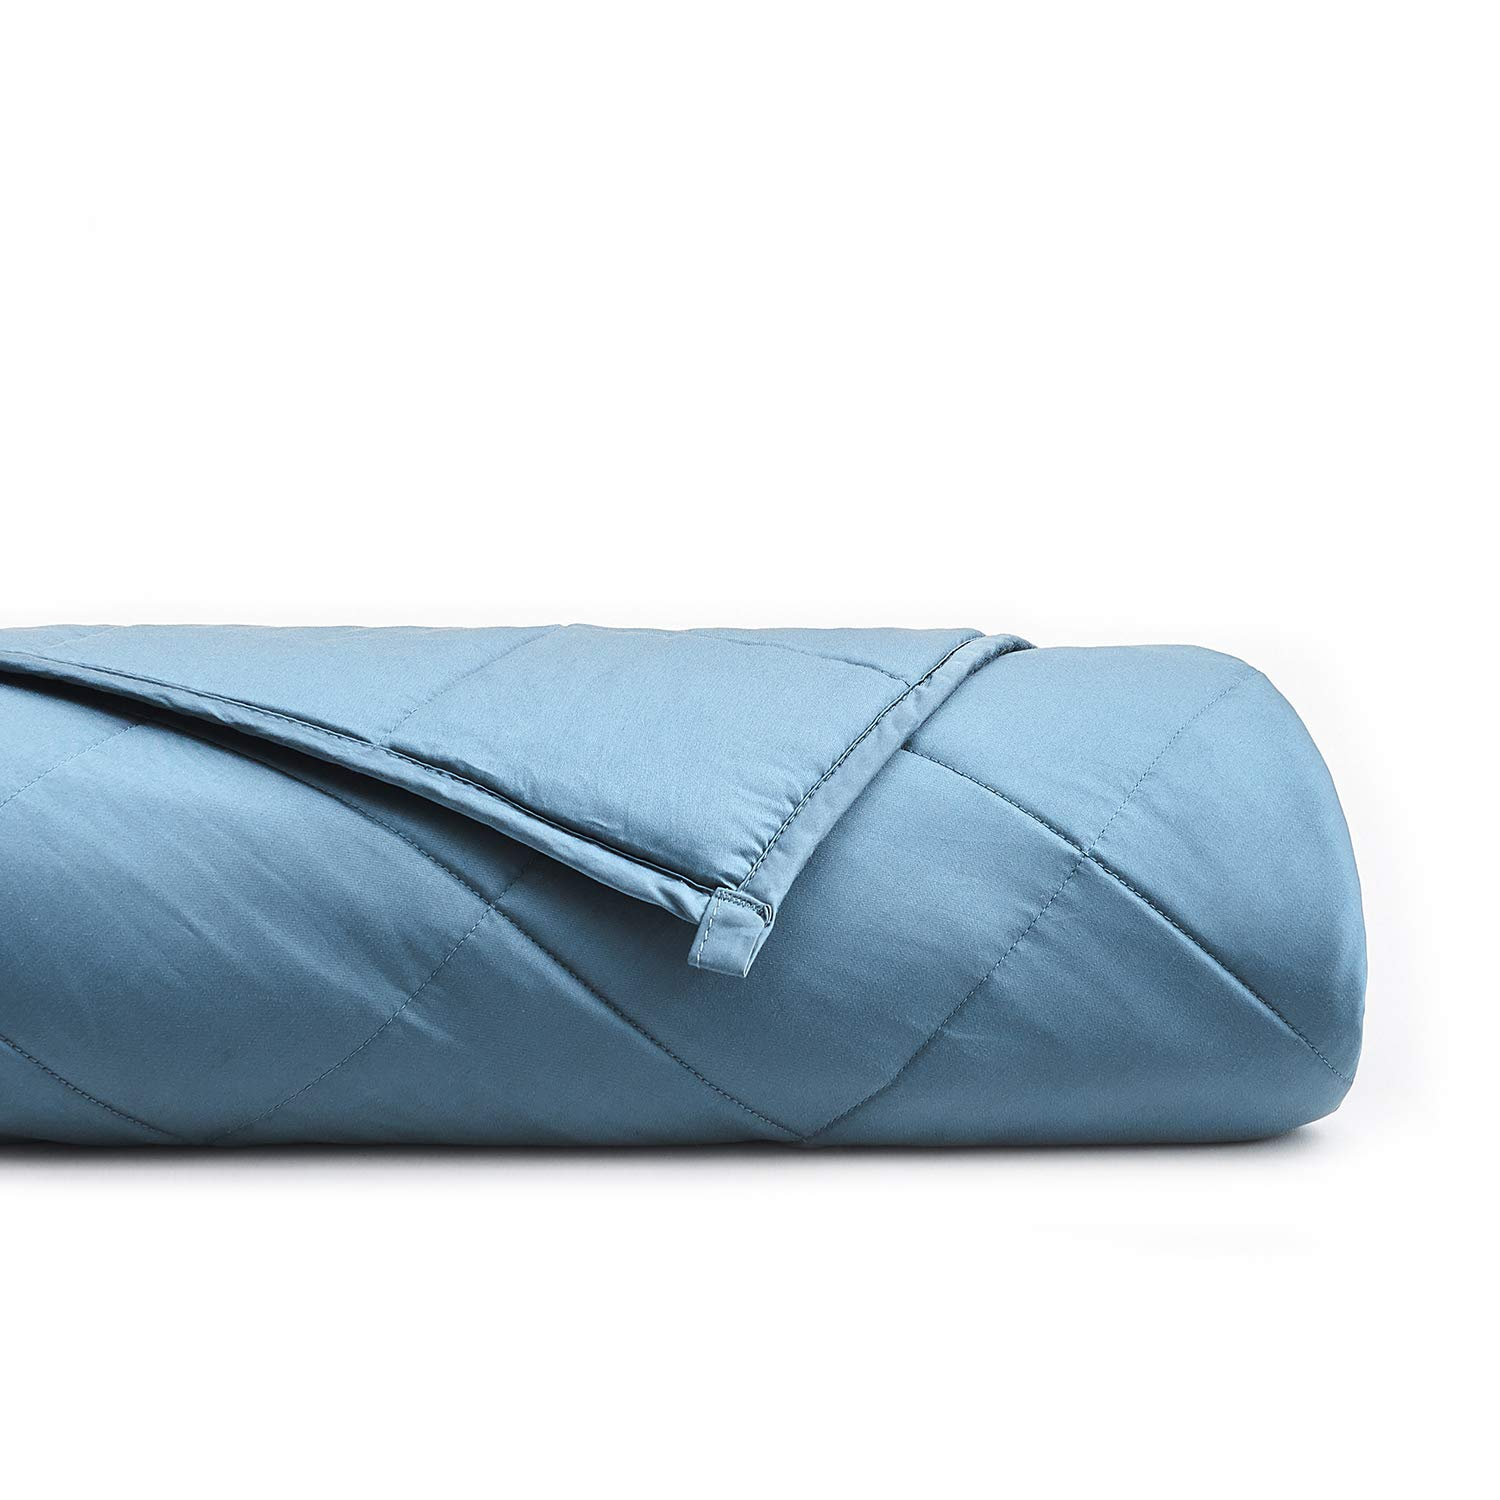 YnM Bamboo Weighted Blanket with 100% Pure Natural Bamboo Viscose | 20 lbs for 150-200 lbs Individual, 60''x 80'' | Luxury Cooler Version Weighted Blanket, Blue Grey by YnM